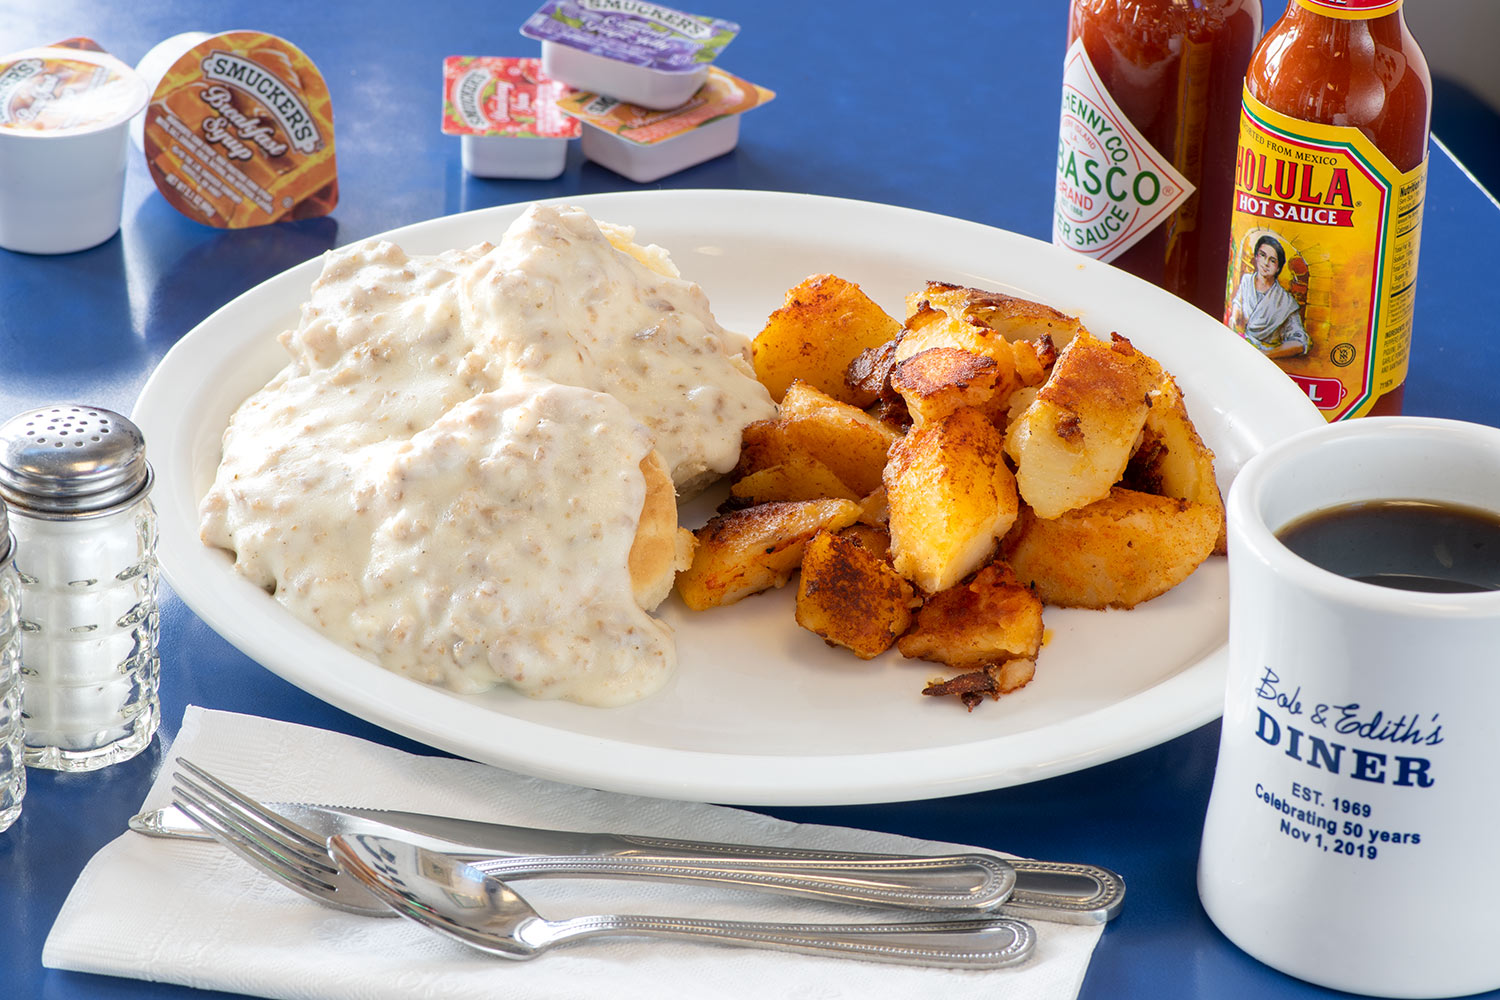 Biscuits & Gravy and hashbrowns